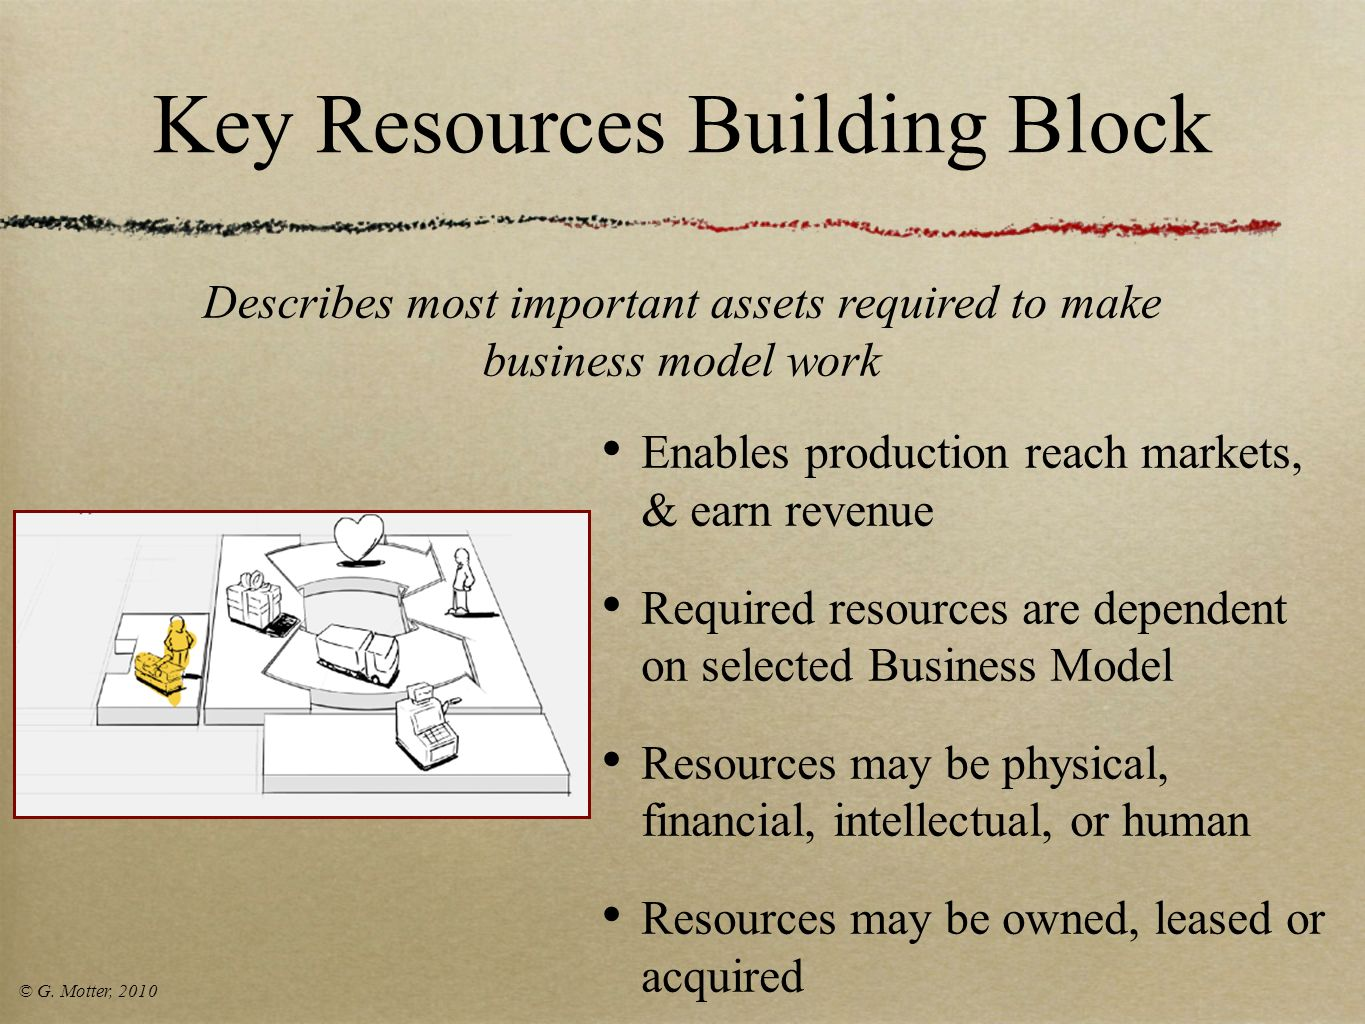 Key Resources Building Block